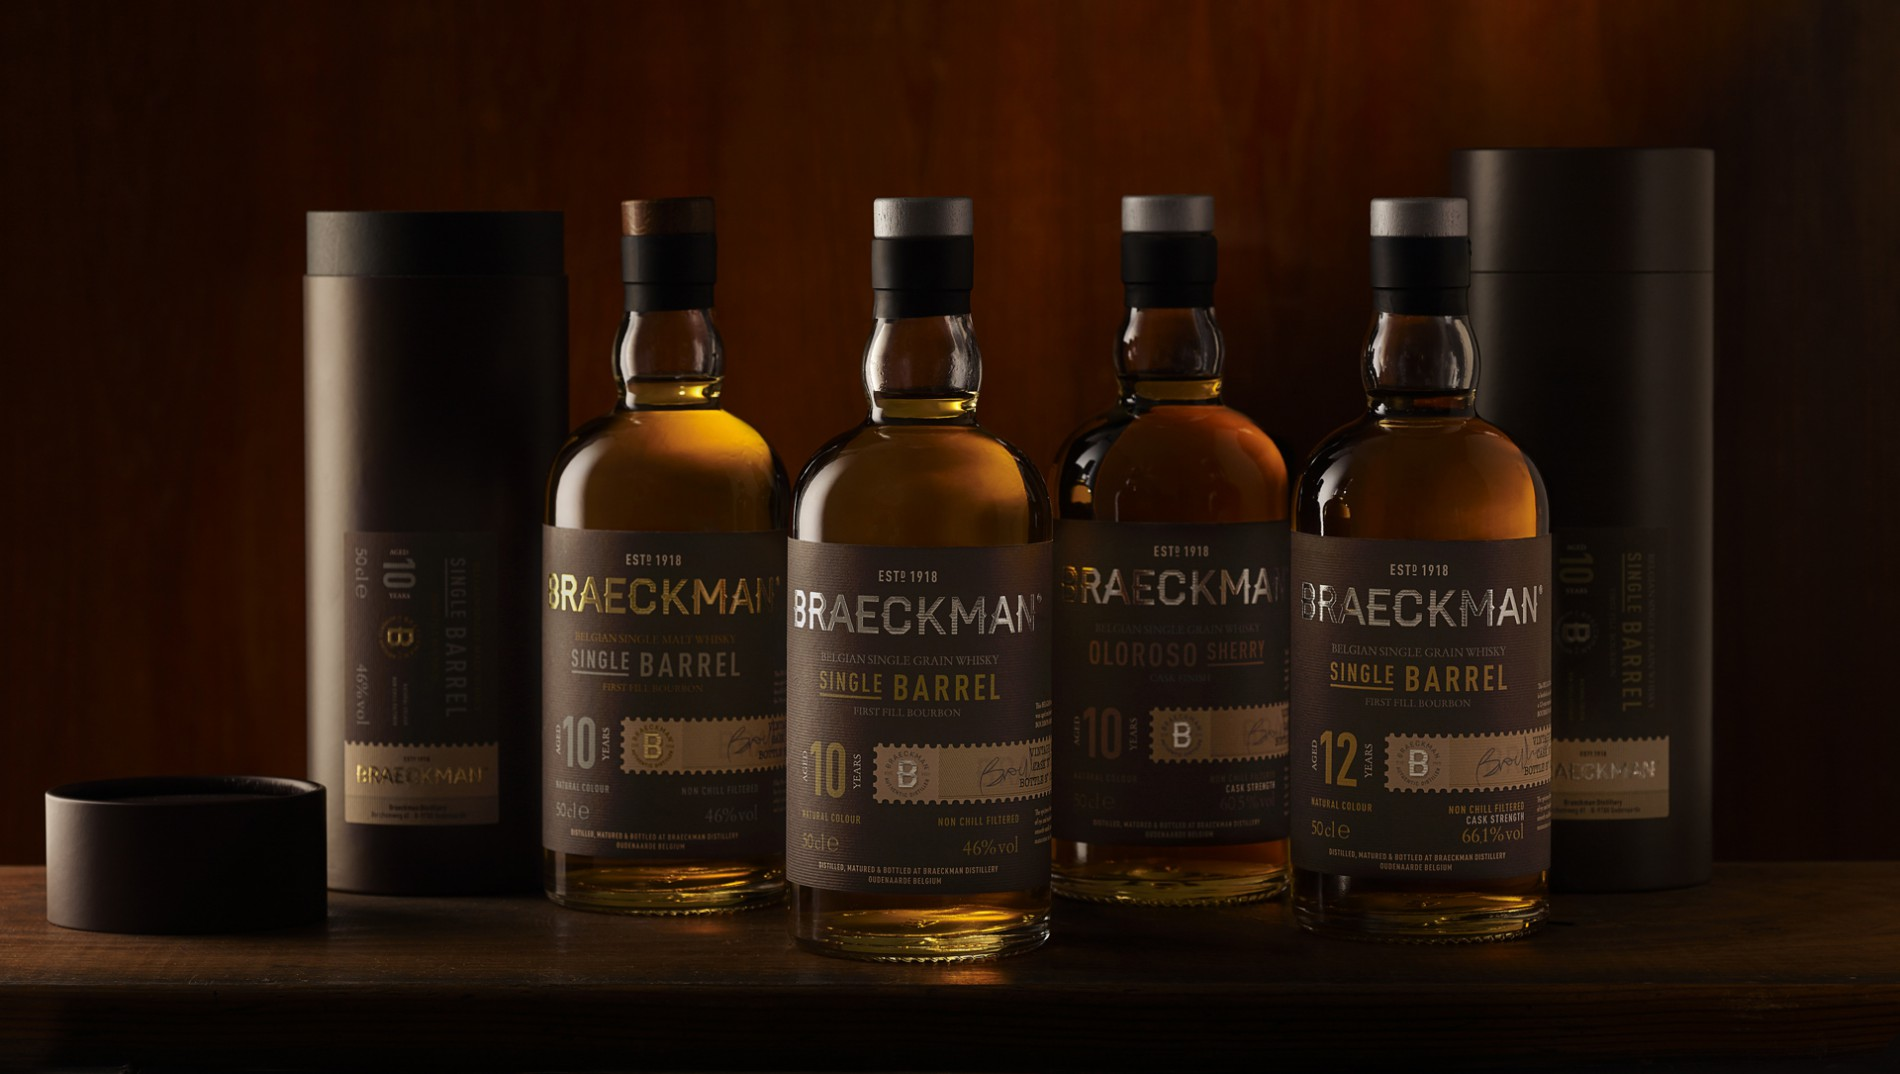 Quatre Mains package design - Package design whiskey, braeckman, quatre mains, packaging